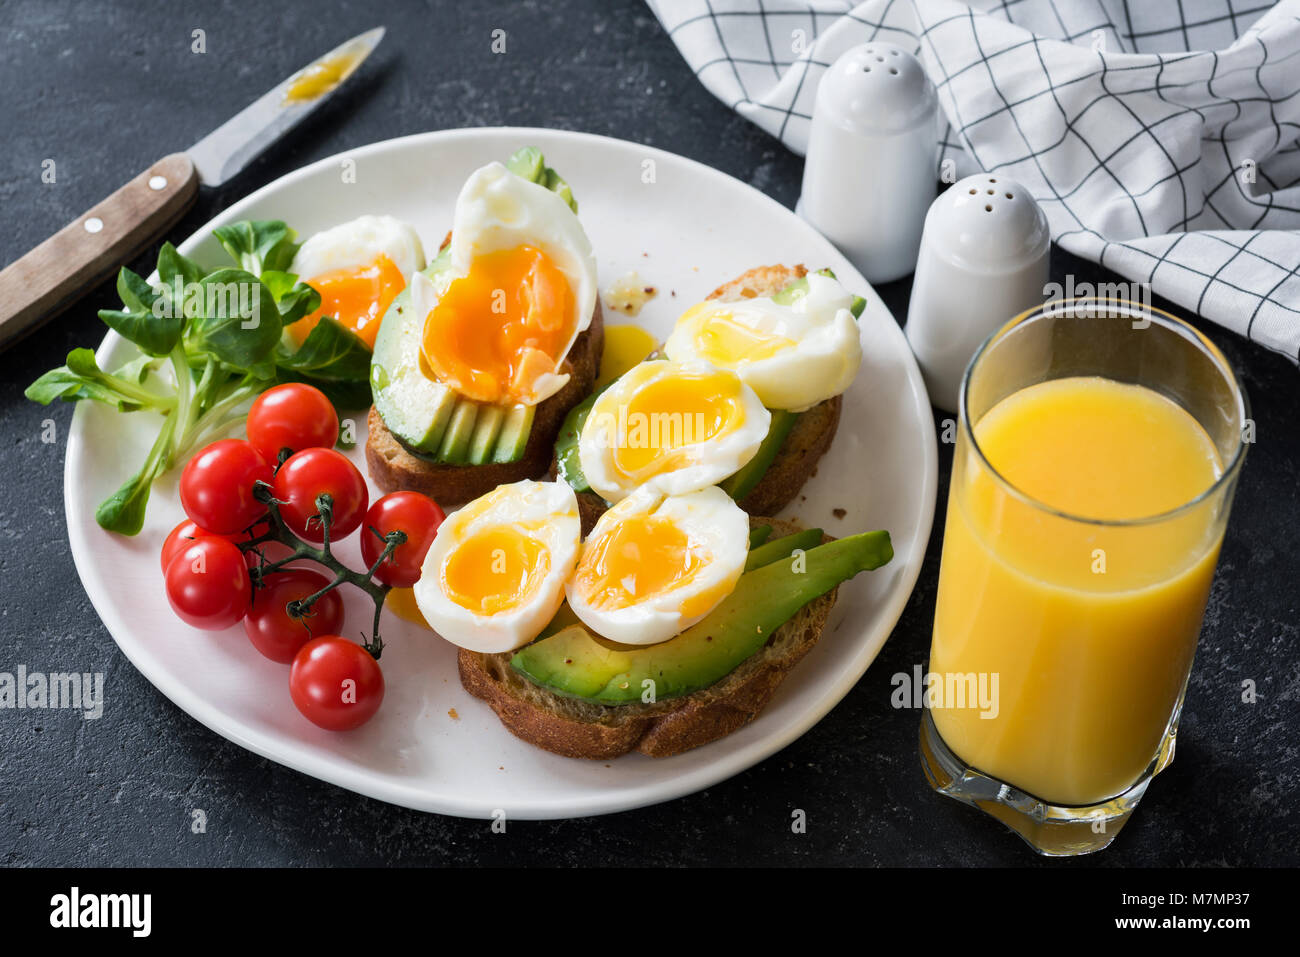 Avocado and poached egg toasts, salad and orange juice on stone table. Closeup view - Stock Image